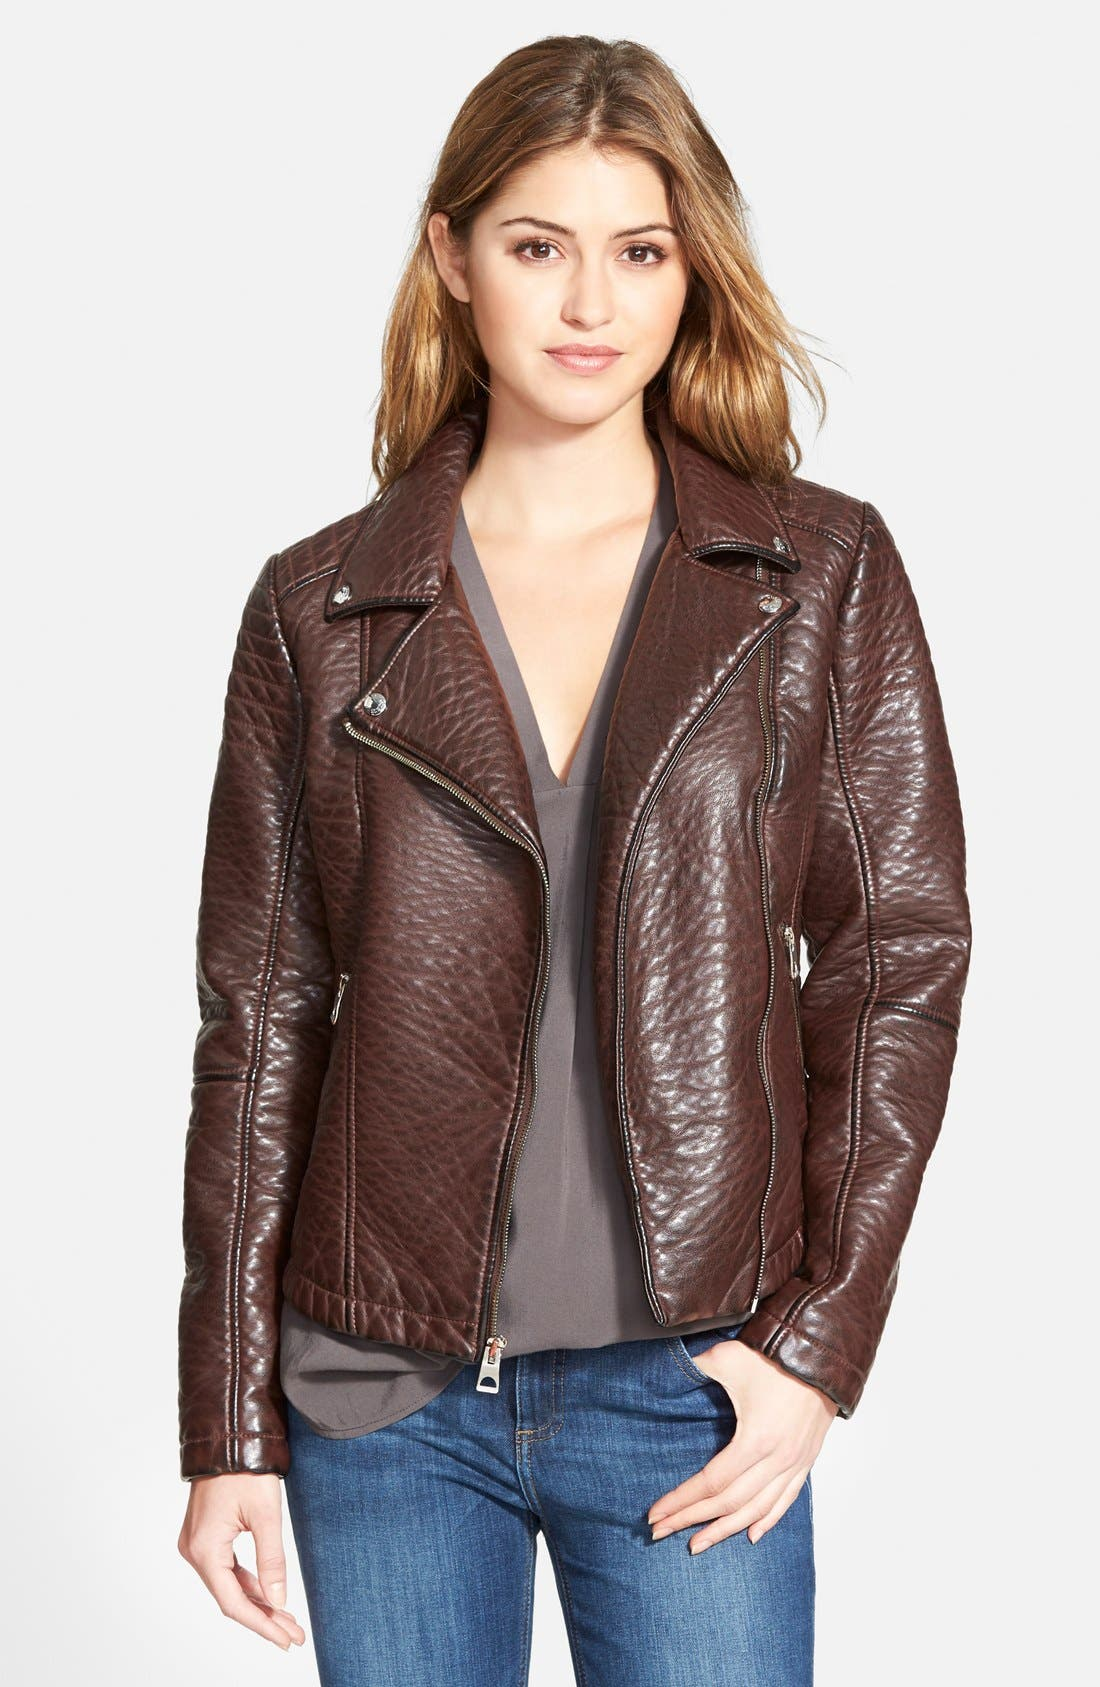 Alternate Image 1 Selected - GUESS Textured Faux Leather Moto Jacket